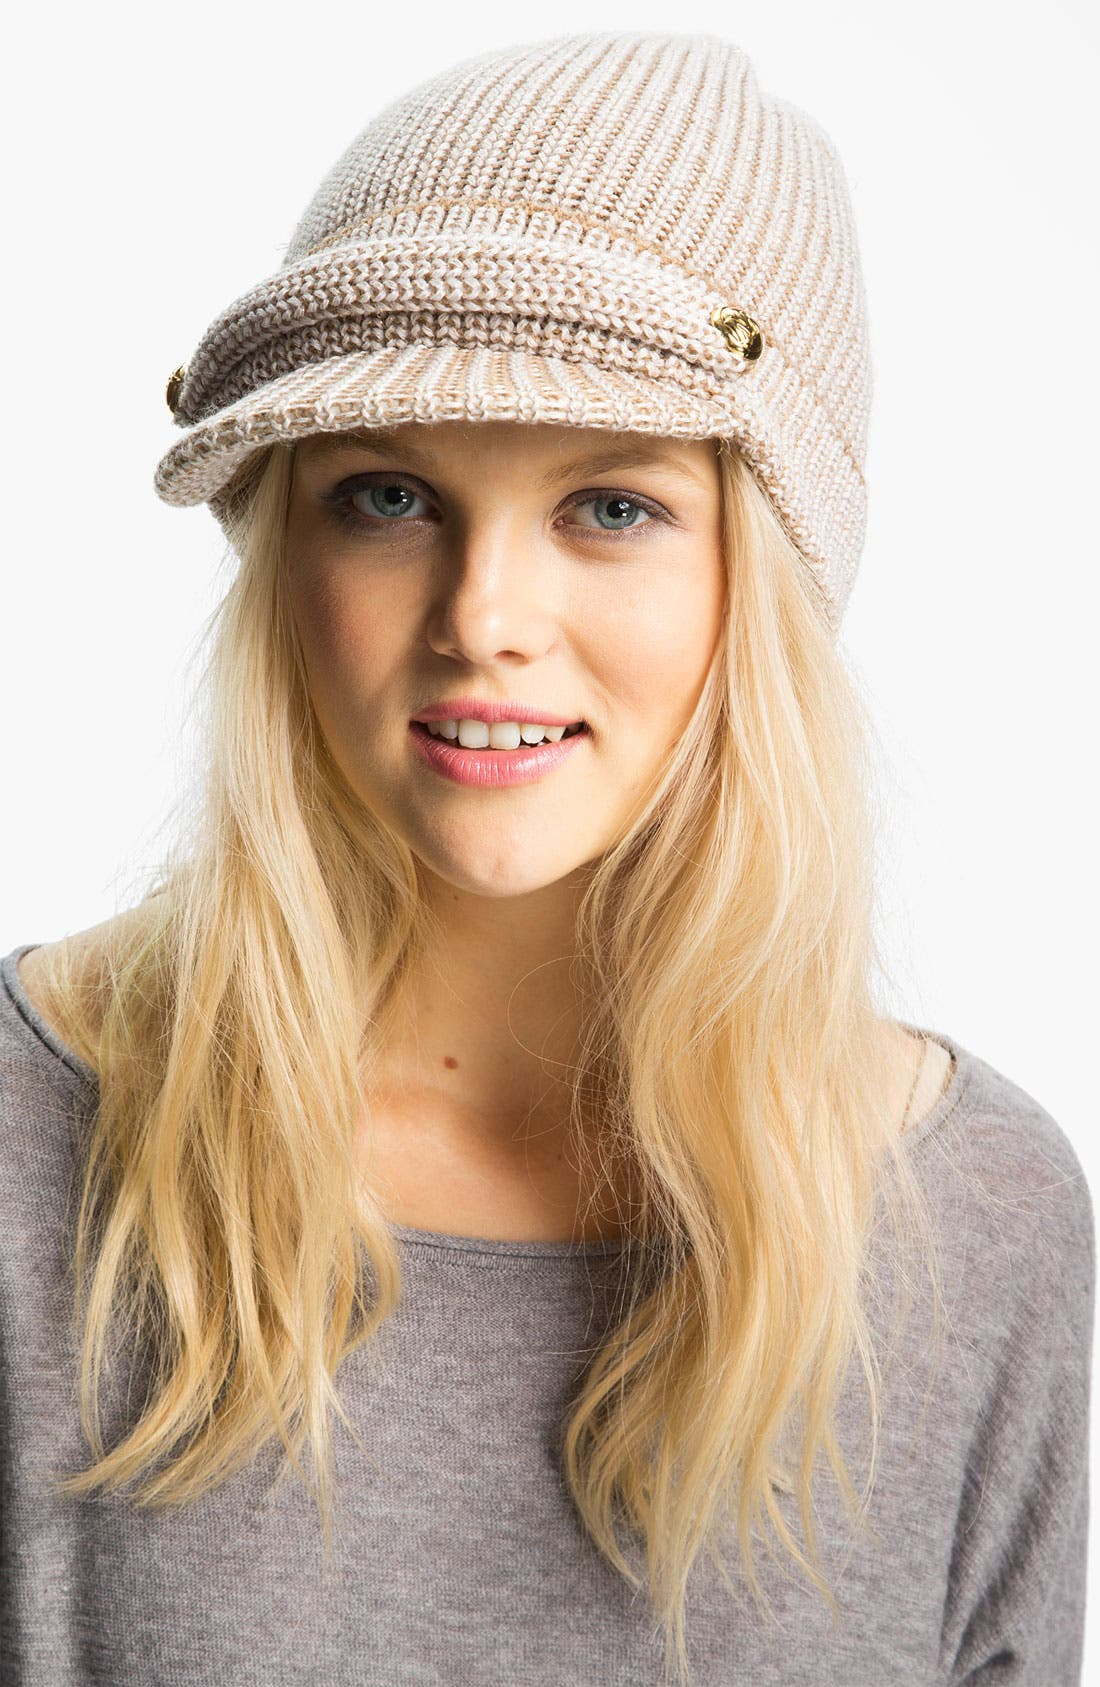 Alternate Image 1 Selected - MICHAEL Michael Kors Newsboy Cap